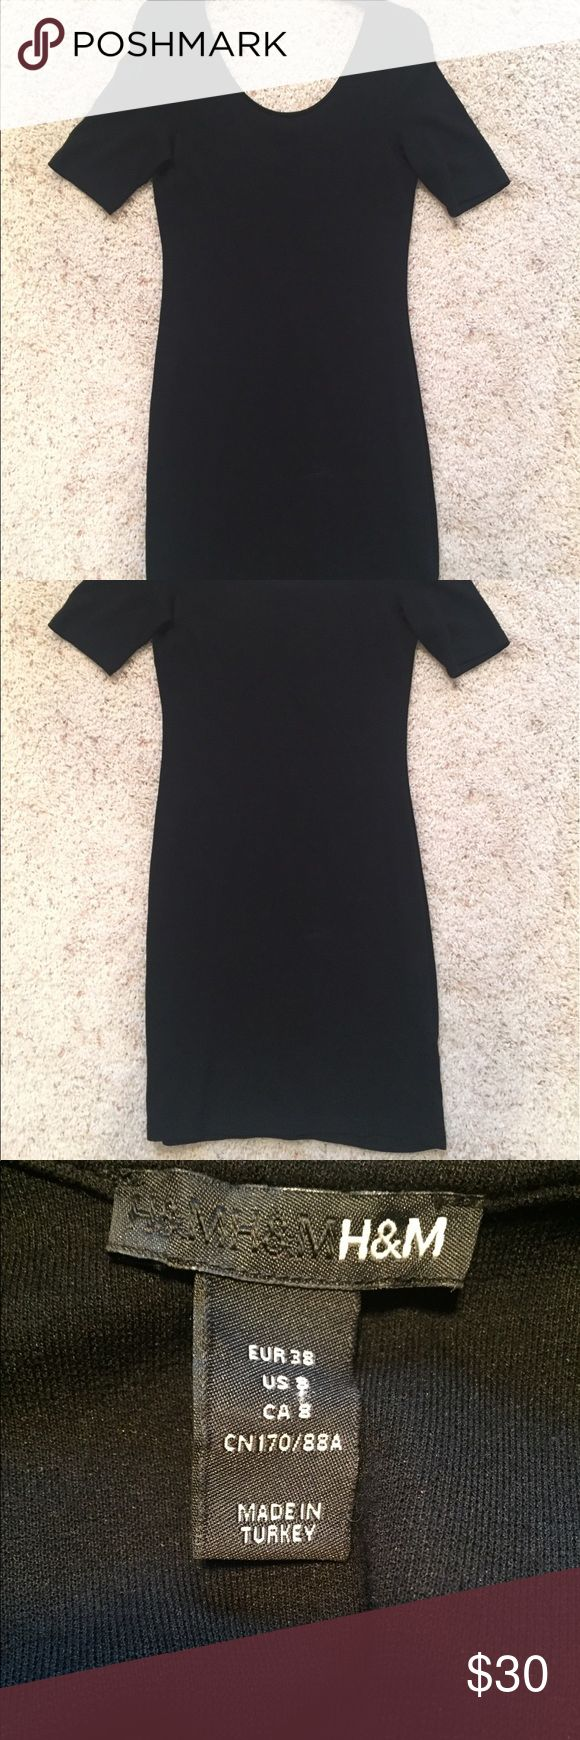 H&M Classic Little Black Dress Stretch H&M Little Black Dress (LBD). Size 10. Material is stretchy.  Scoop neck in front and back. Dress is versatile- can dress up or down. From a pet free/smoke free home. Worn once.  💜5 Star Rated Seller! 💜Same or Next Day Shipper (Excludes Weekends and Holidays)! H&M Dresses Midi